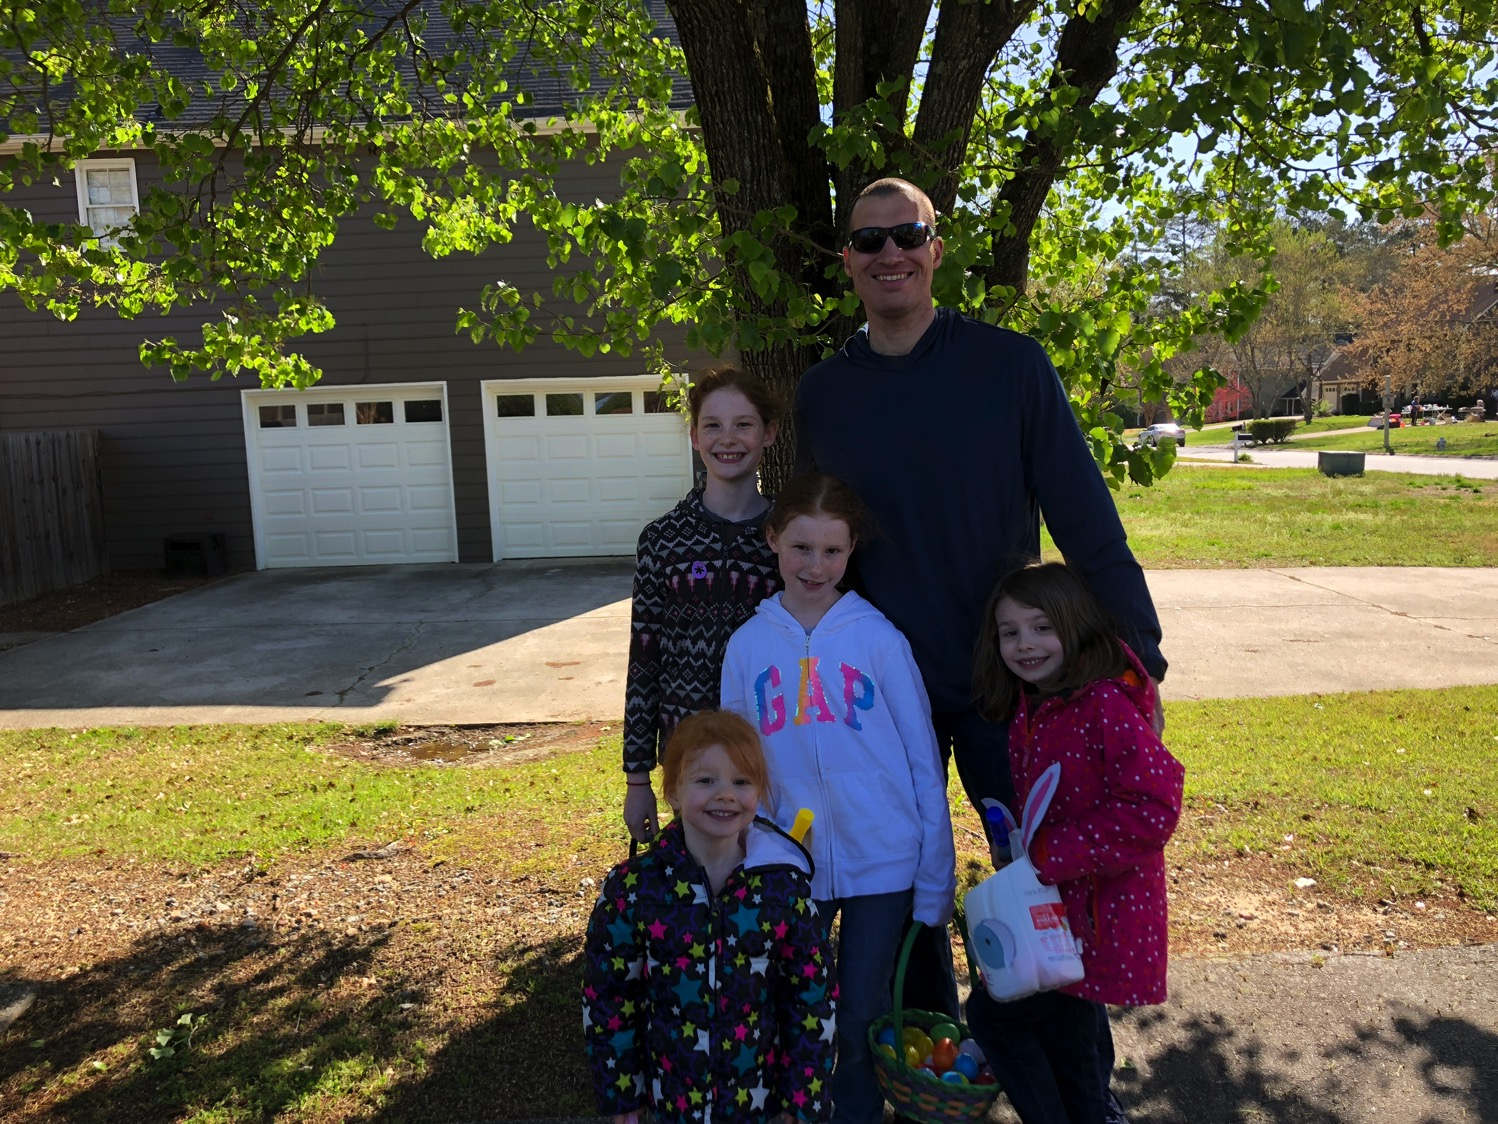 Daddy and the girls at easter egg hunt